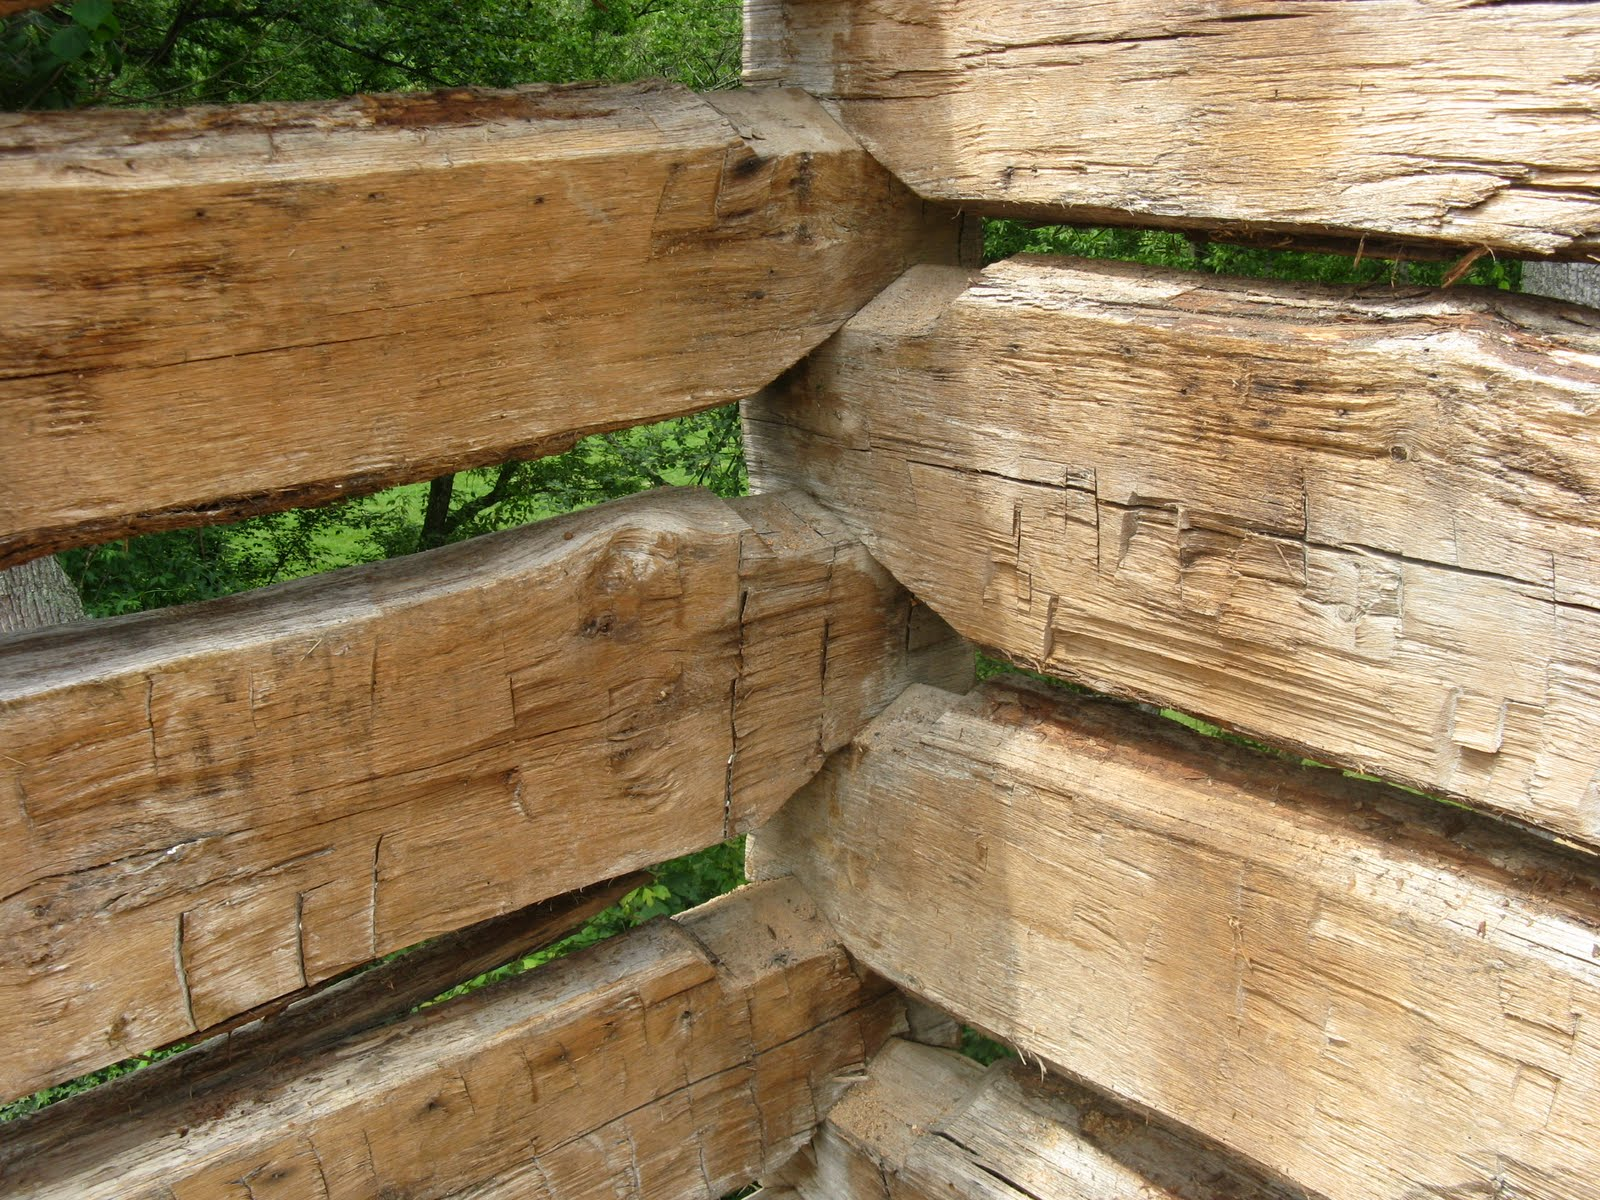 Superb img of header log 2 jason renotching logs 3 a very tight fit 4 v notch june  with #987233 color and 1600x1200 pixels